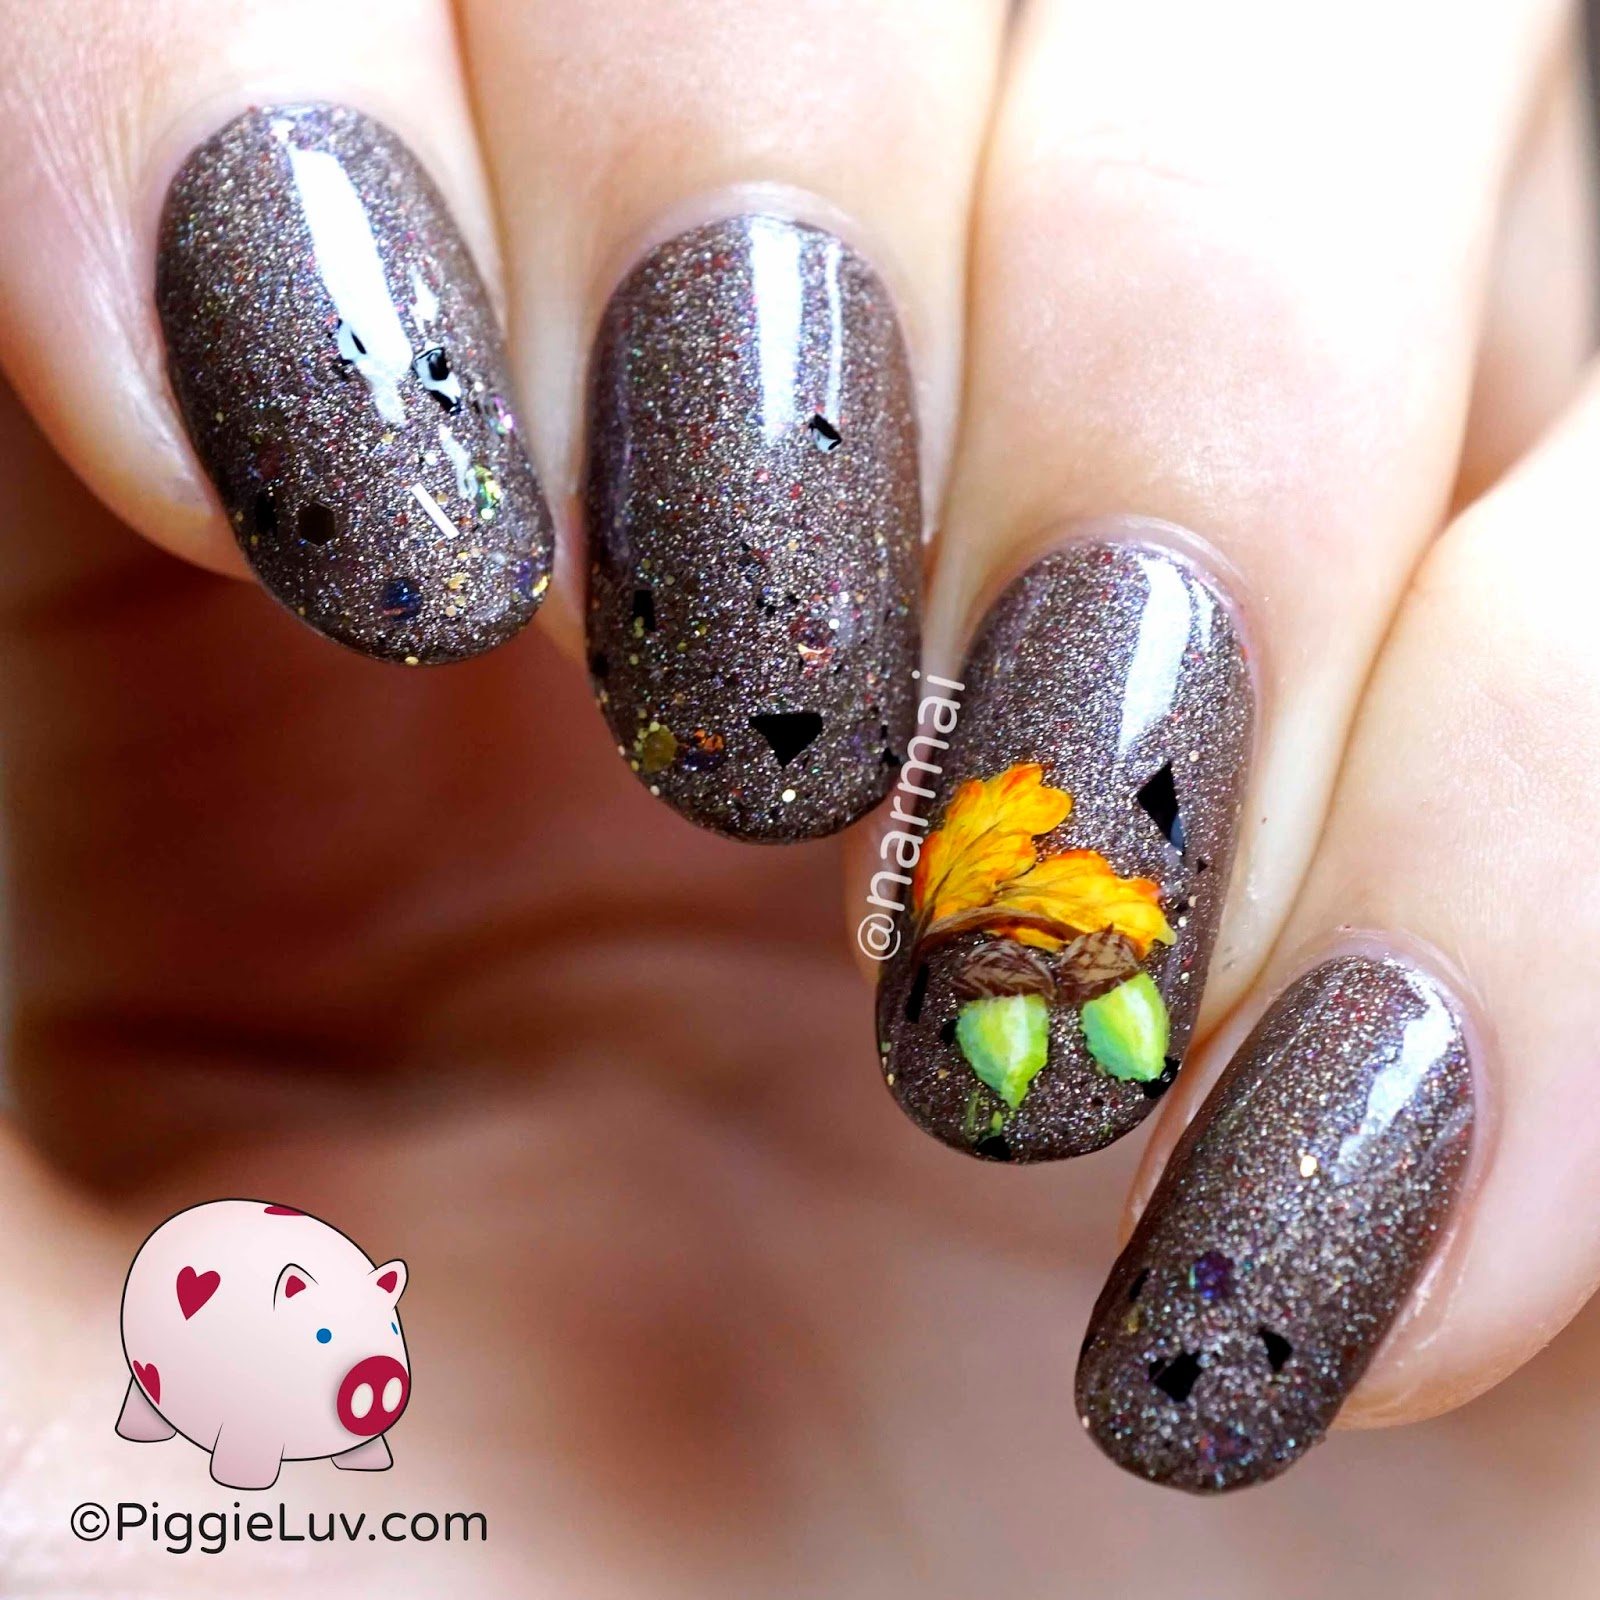 Piggieluv November Nail The Mail Box Review Nail Art